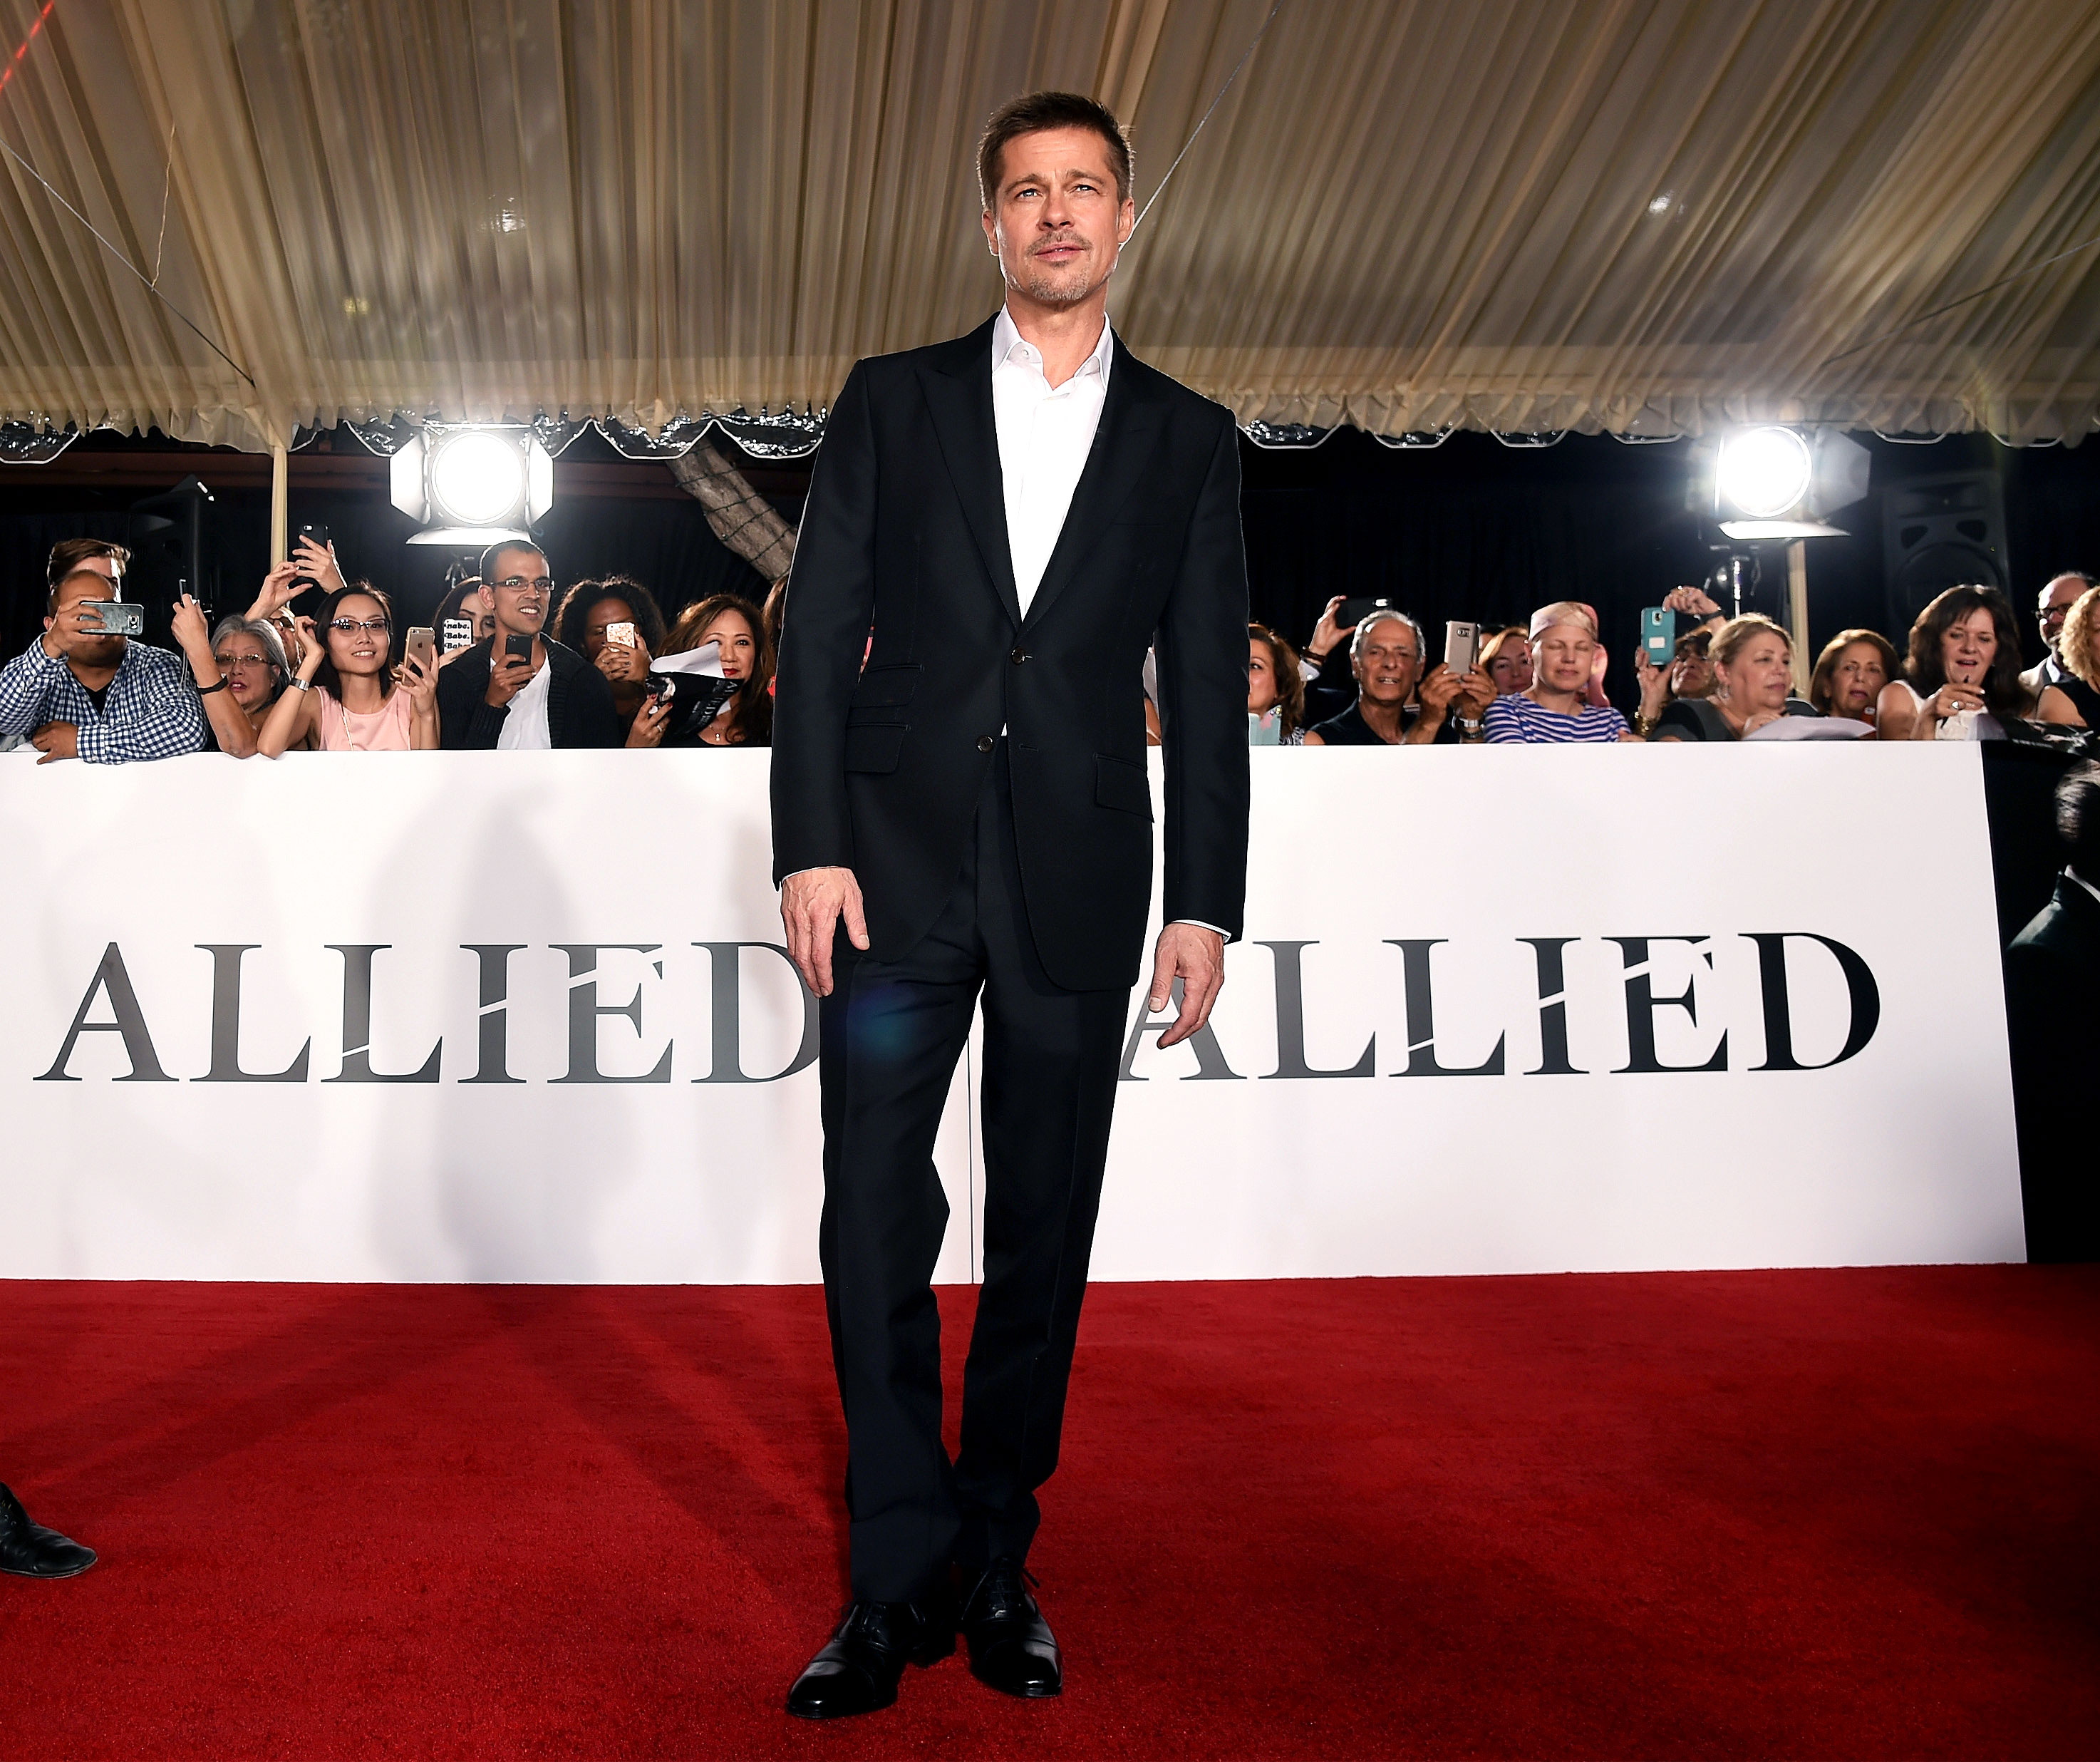 Brad Pitt - Brad Pitt earned his Hollywood heartthrob status the moment he hit scene some three decades ago. And he's carrying that on in 2019 with his role in Once Upon a Time in Hollywood , making a triumphant return to the red carpet at the Cannes Film Festival on Tuesday, May 21.